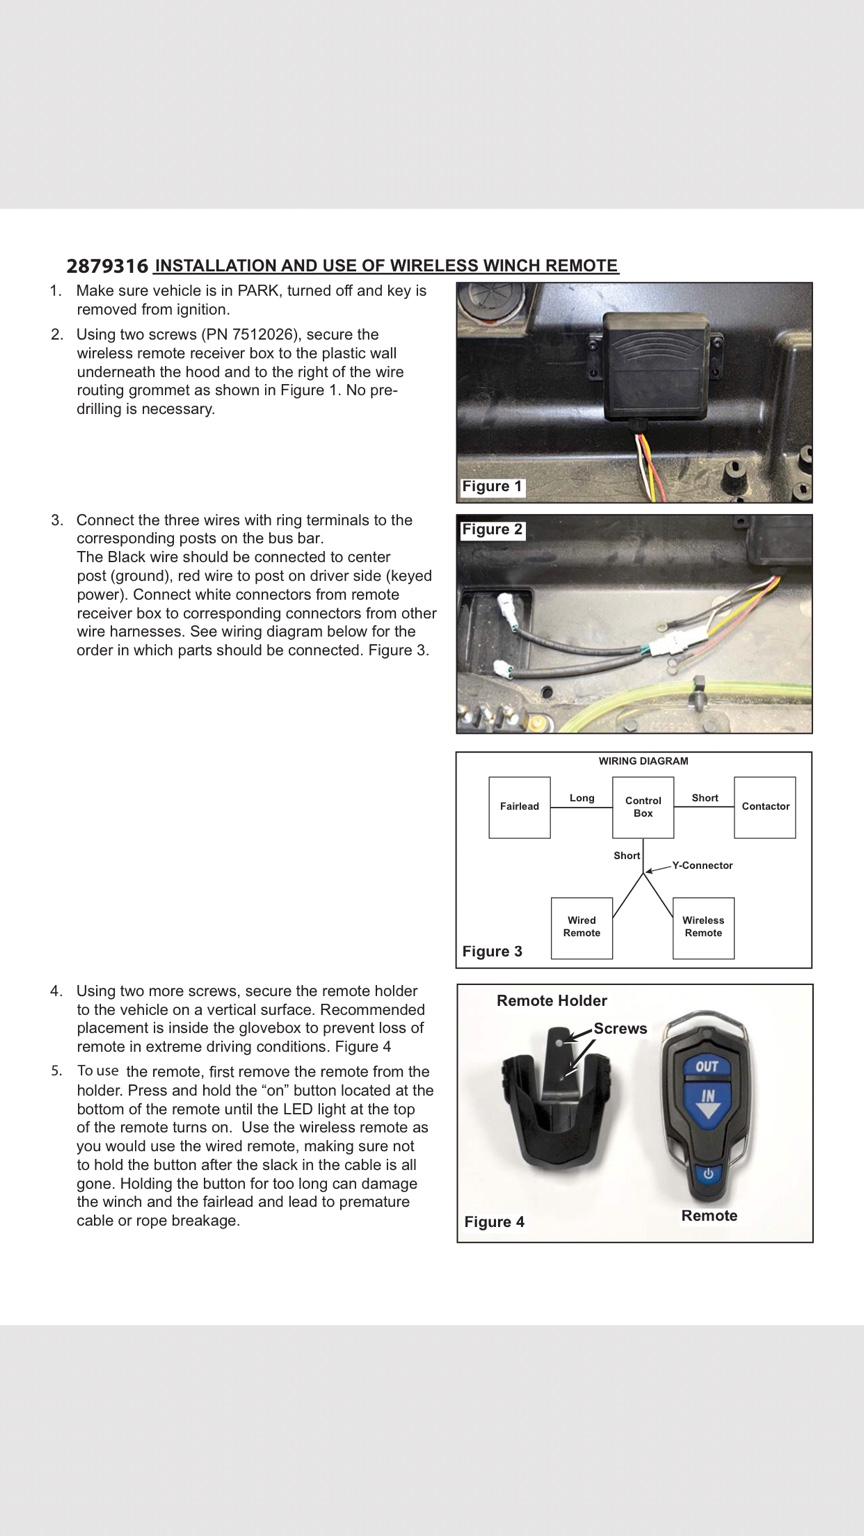 superwinch 4500 wiring diagram auto electrical wiring diagram superwinch  wiring for solenoids 4500 superwinch wiring diagram